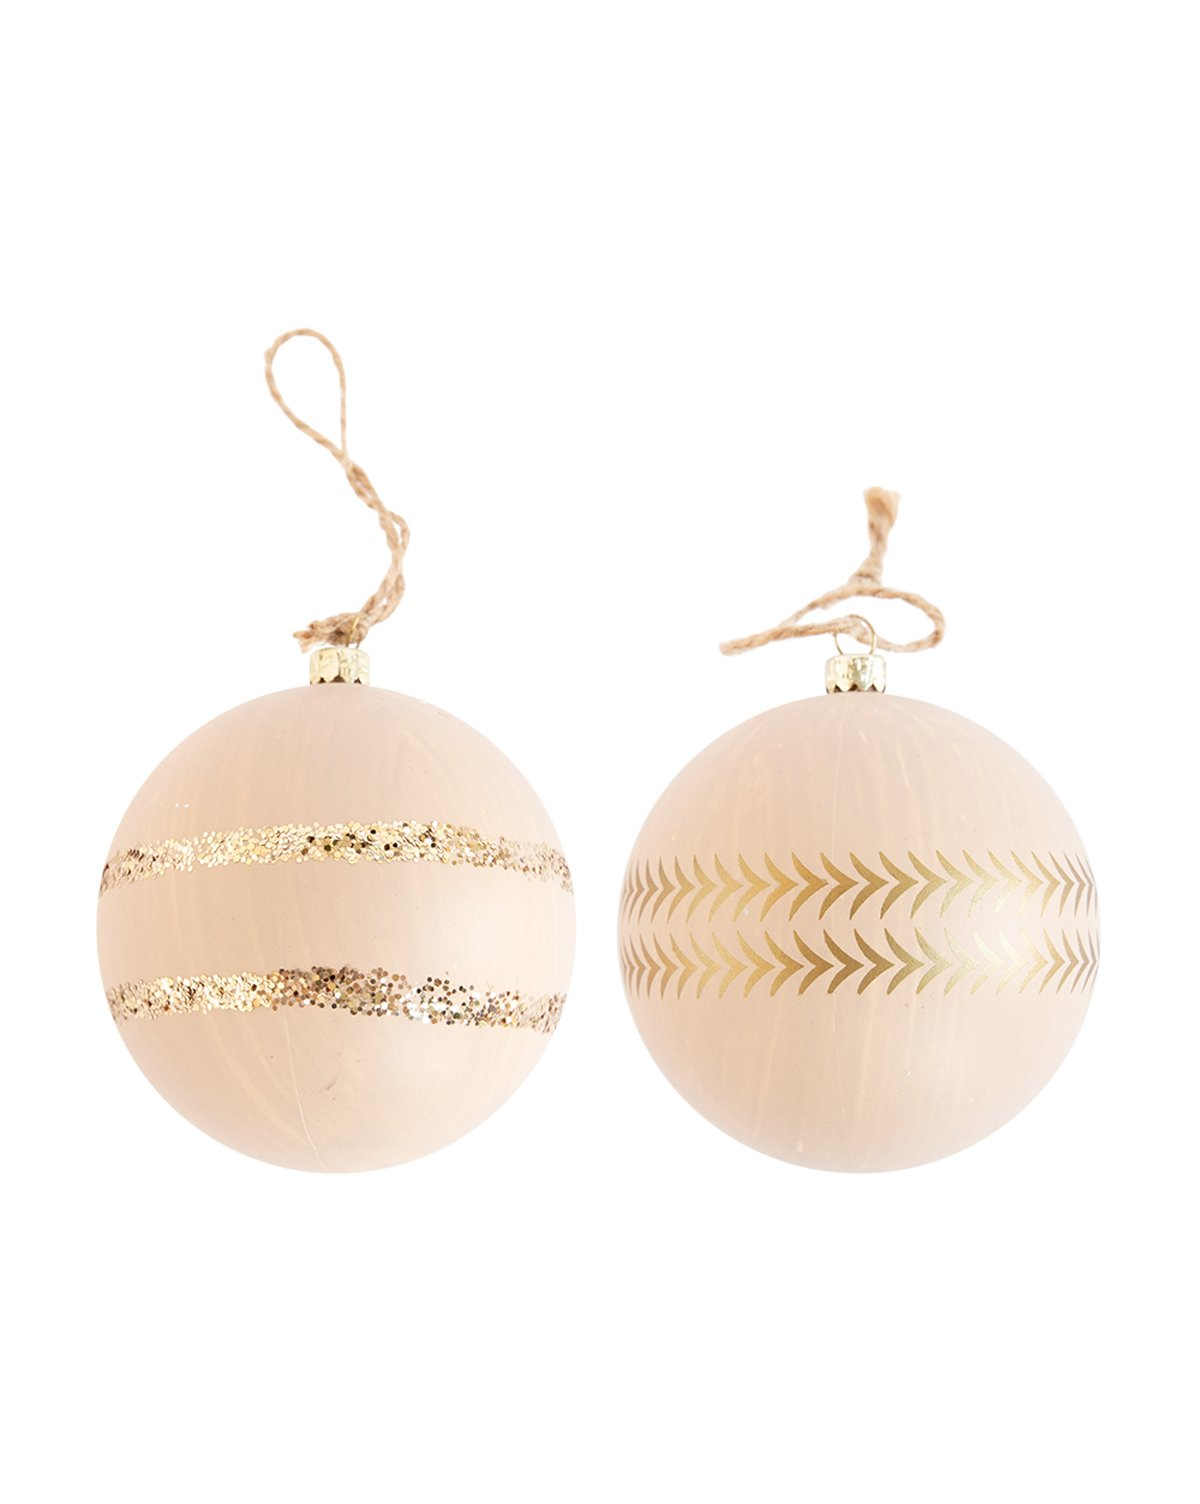 Natural_Gold_Ball_Ornaments_2.jpg